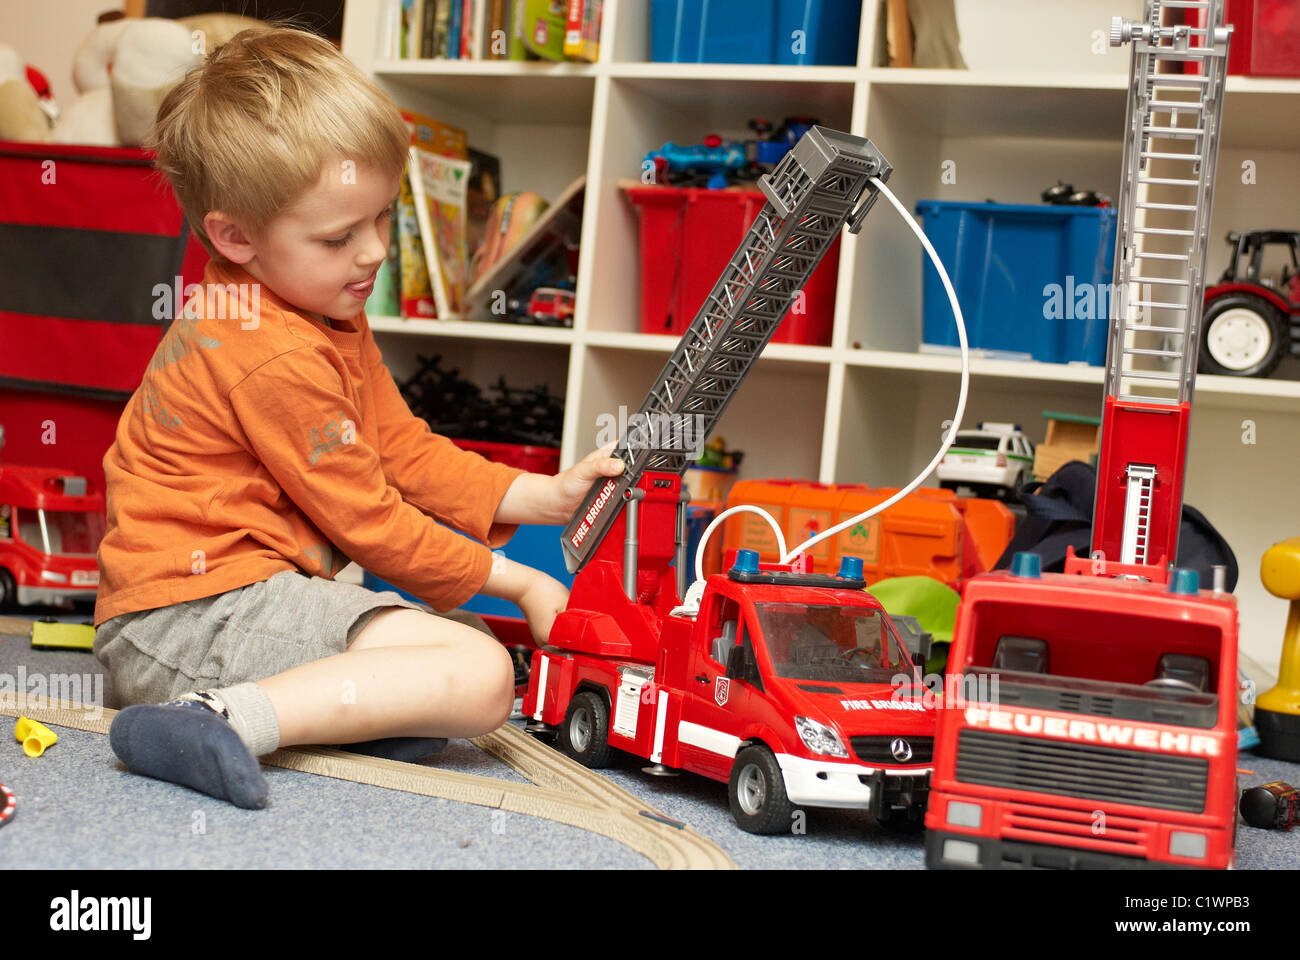 Young Boy Playing With Toy Fire Truck In Children S Room